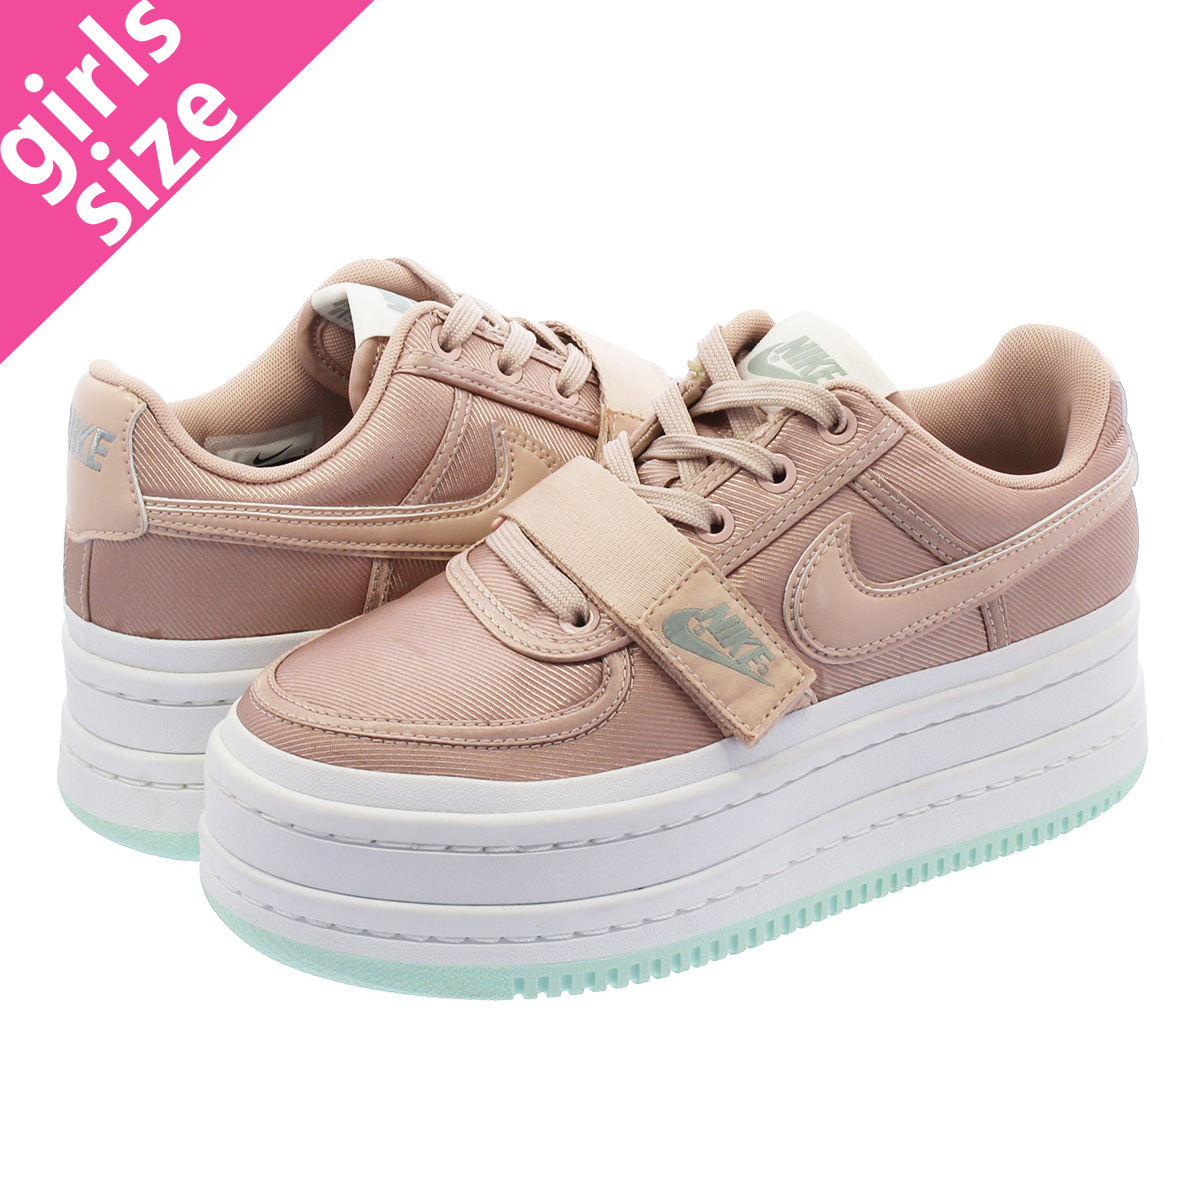 new product d24af e52bf NIKE WMNS VANDAL 2K Nike women Vandal 2K PARTICLE BEIGE SUMMIT WHITE  ao2868-200 ...